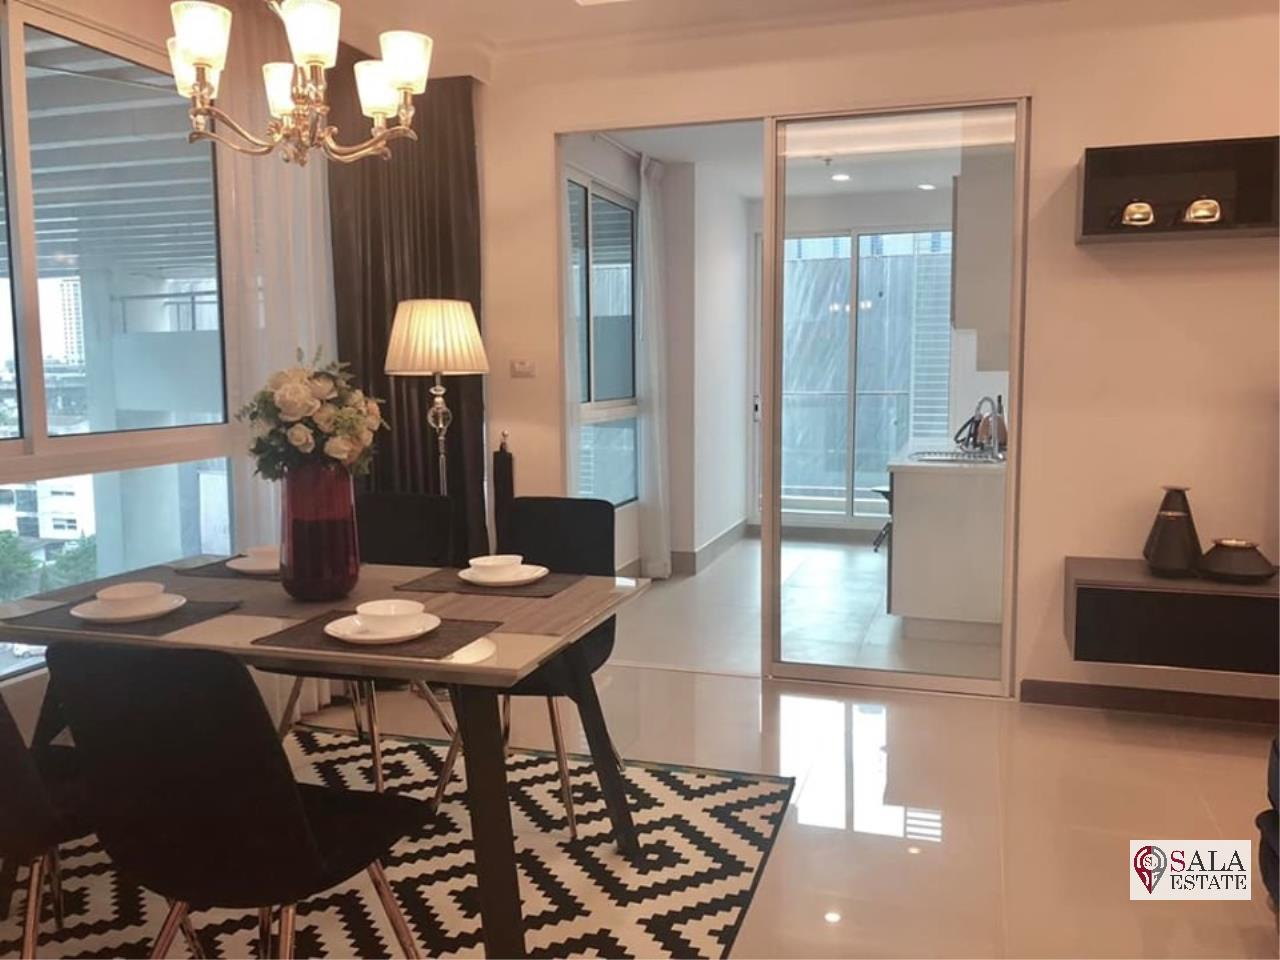 SALA ESTATE Agency's (FOR RENT) SUPALAI ELITE PHAYATHAI – BTS PHAYA THAI,70 SQM 1 BEDROOM 1 BATHROOM, FULLY FERNISHED, CITY VIEW 15